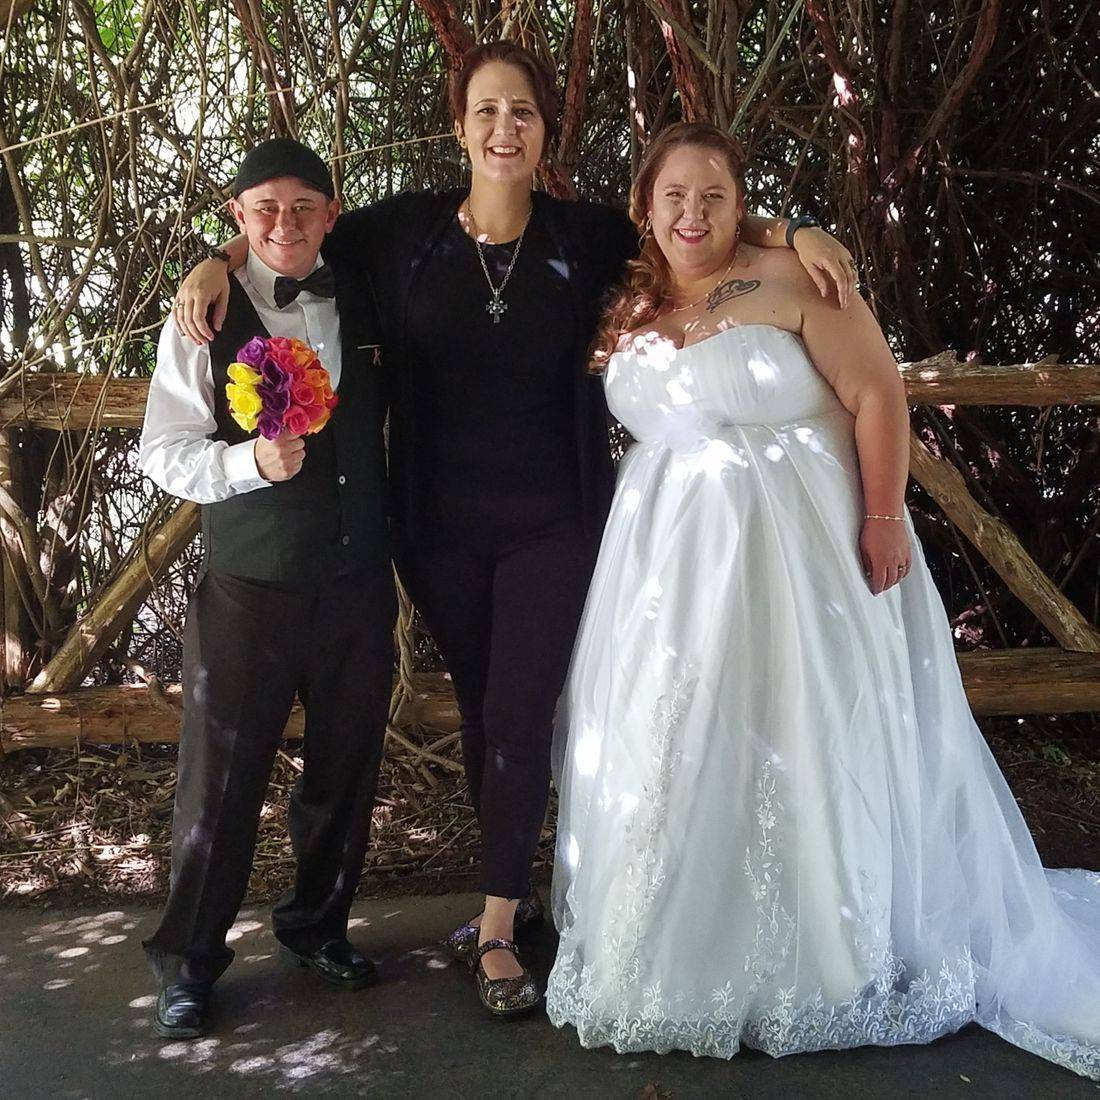 lgbtq, sloan park, mt ulla, officiant, wedding, celebrant, minister, outdoor wedding